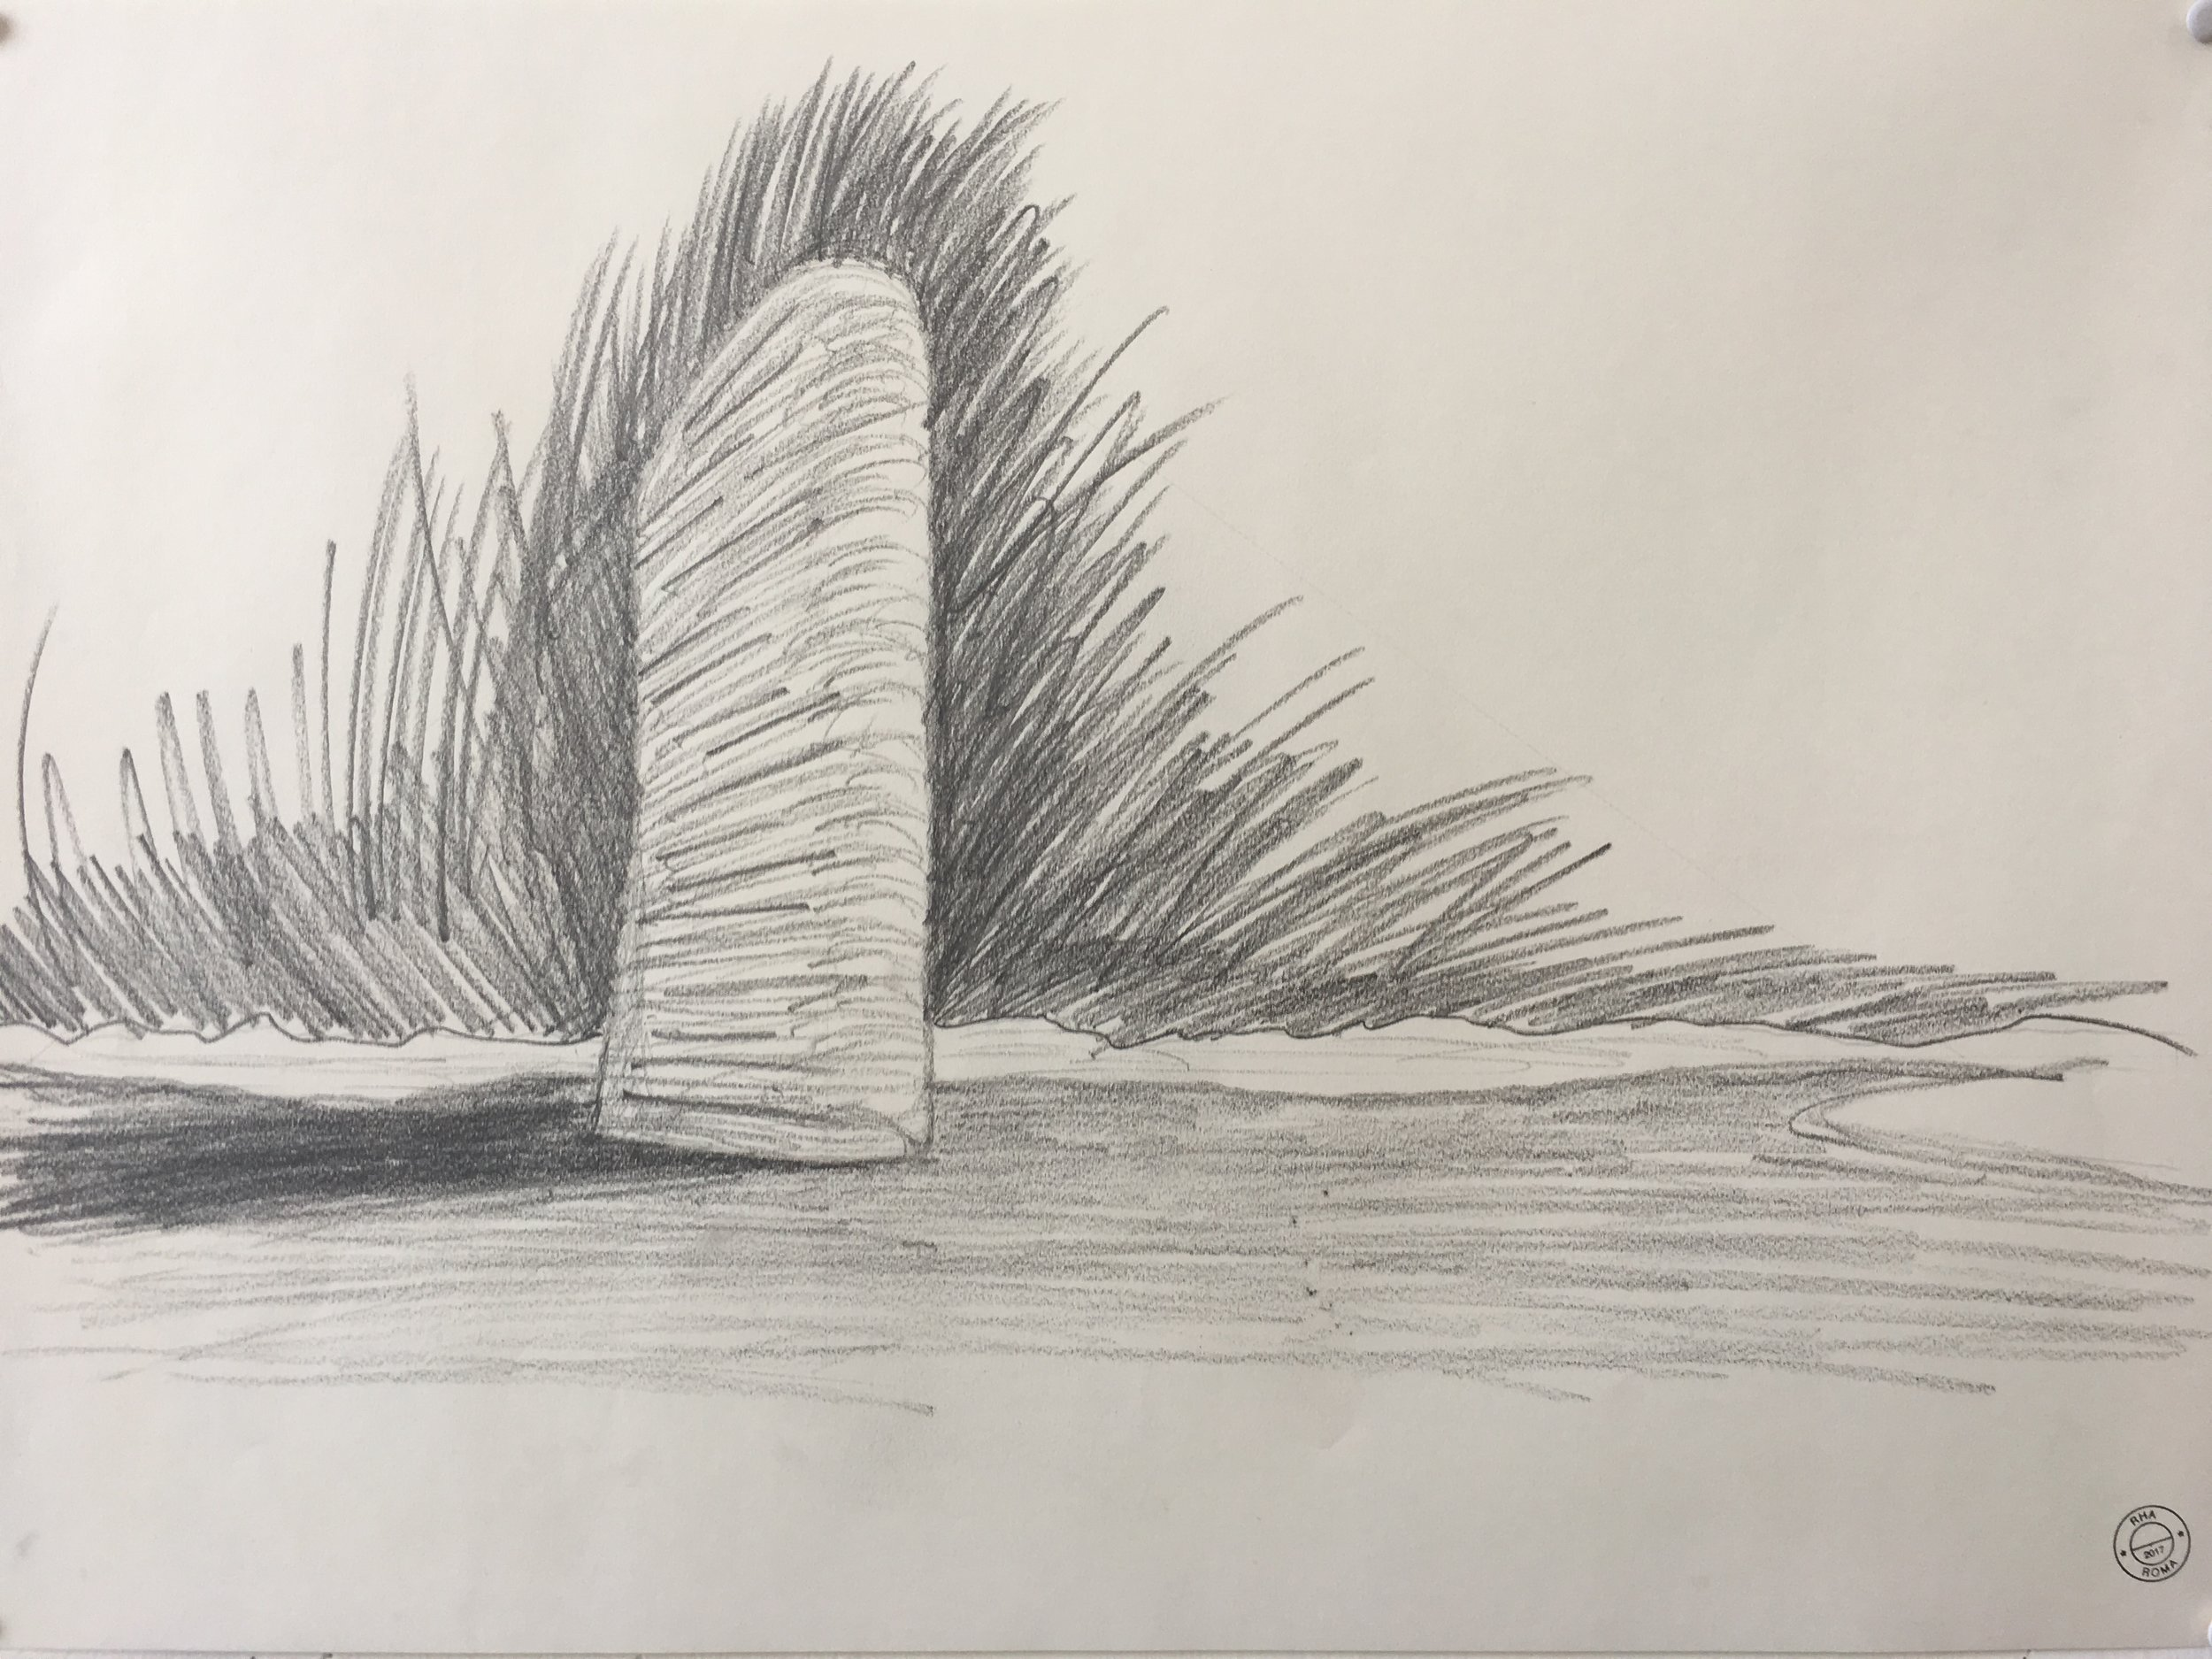 'Lighthouse', one of nine allegorical works of architecture that make up 'Memory Houses', drawing by Robert Hutchison.